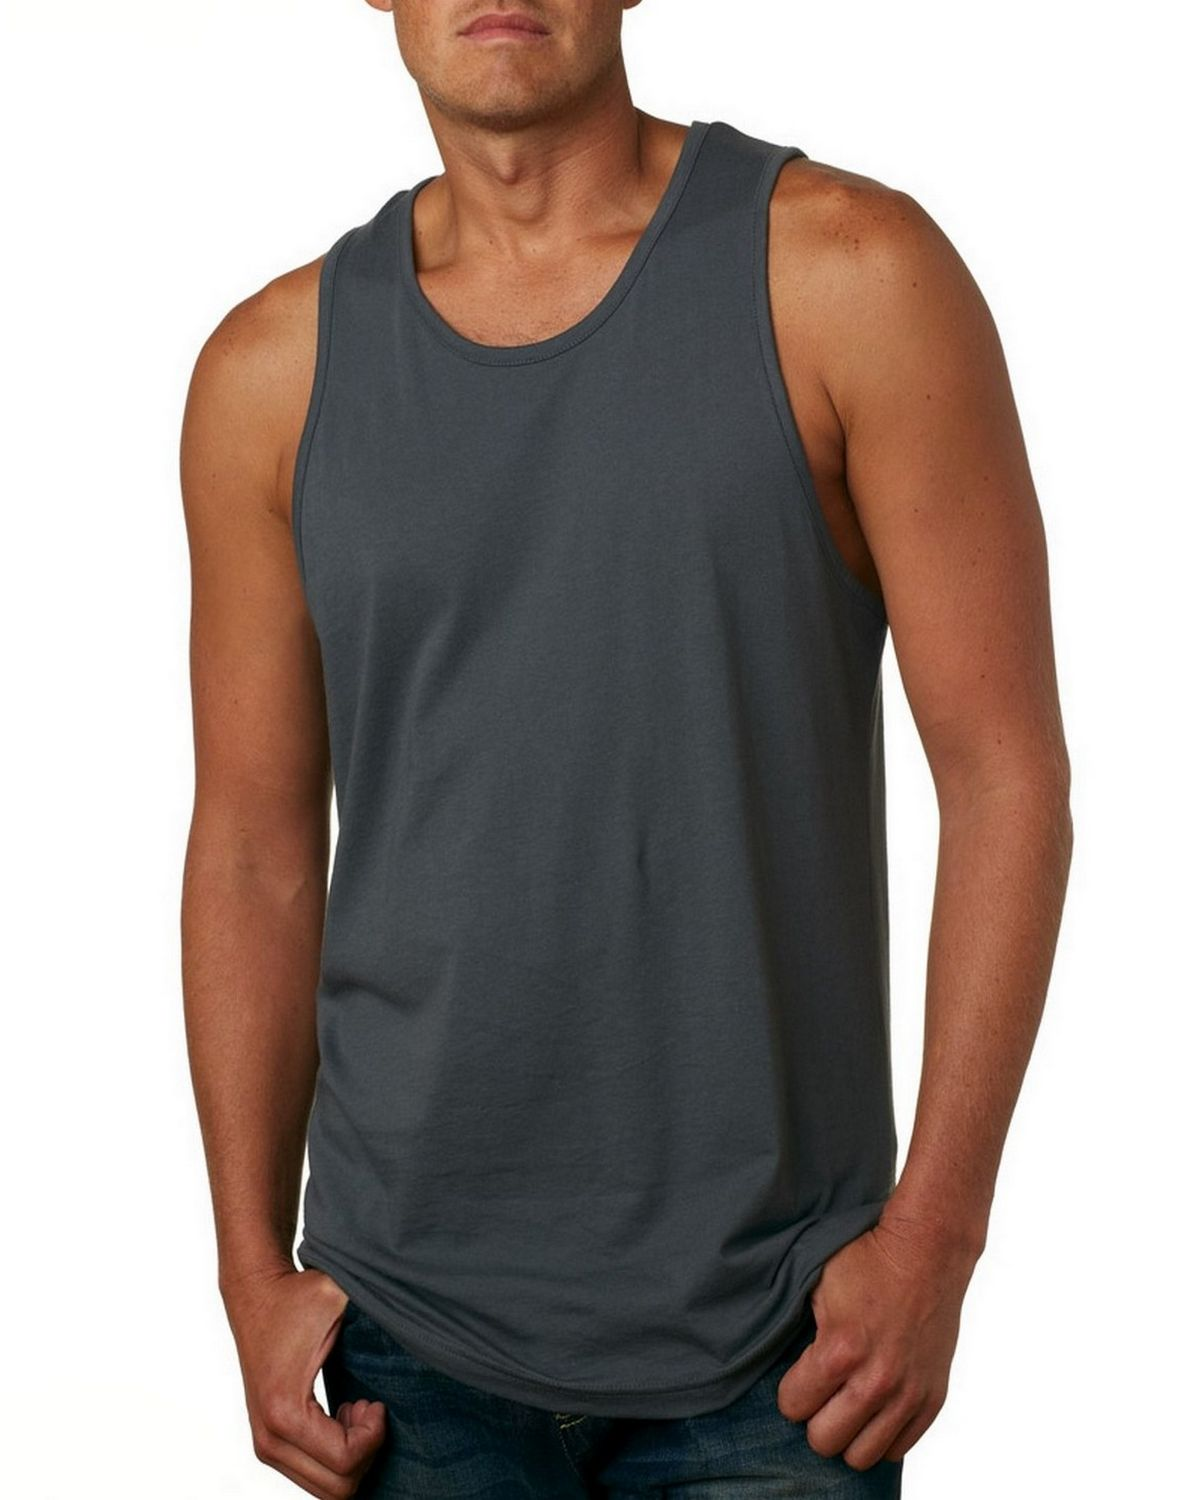 9ca5c600a404d The 10 Best Tank Tops for Men